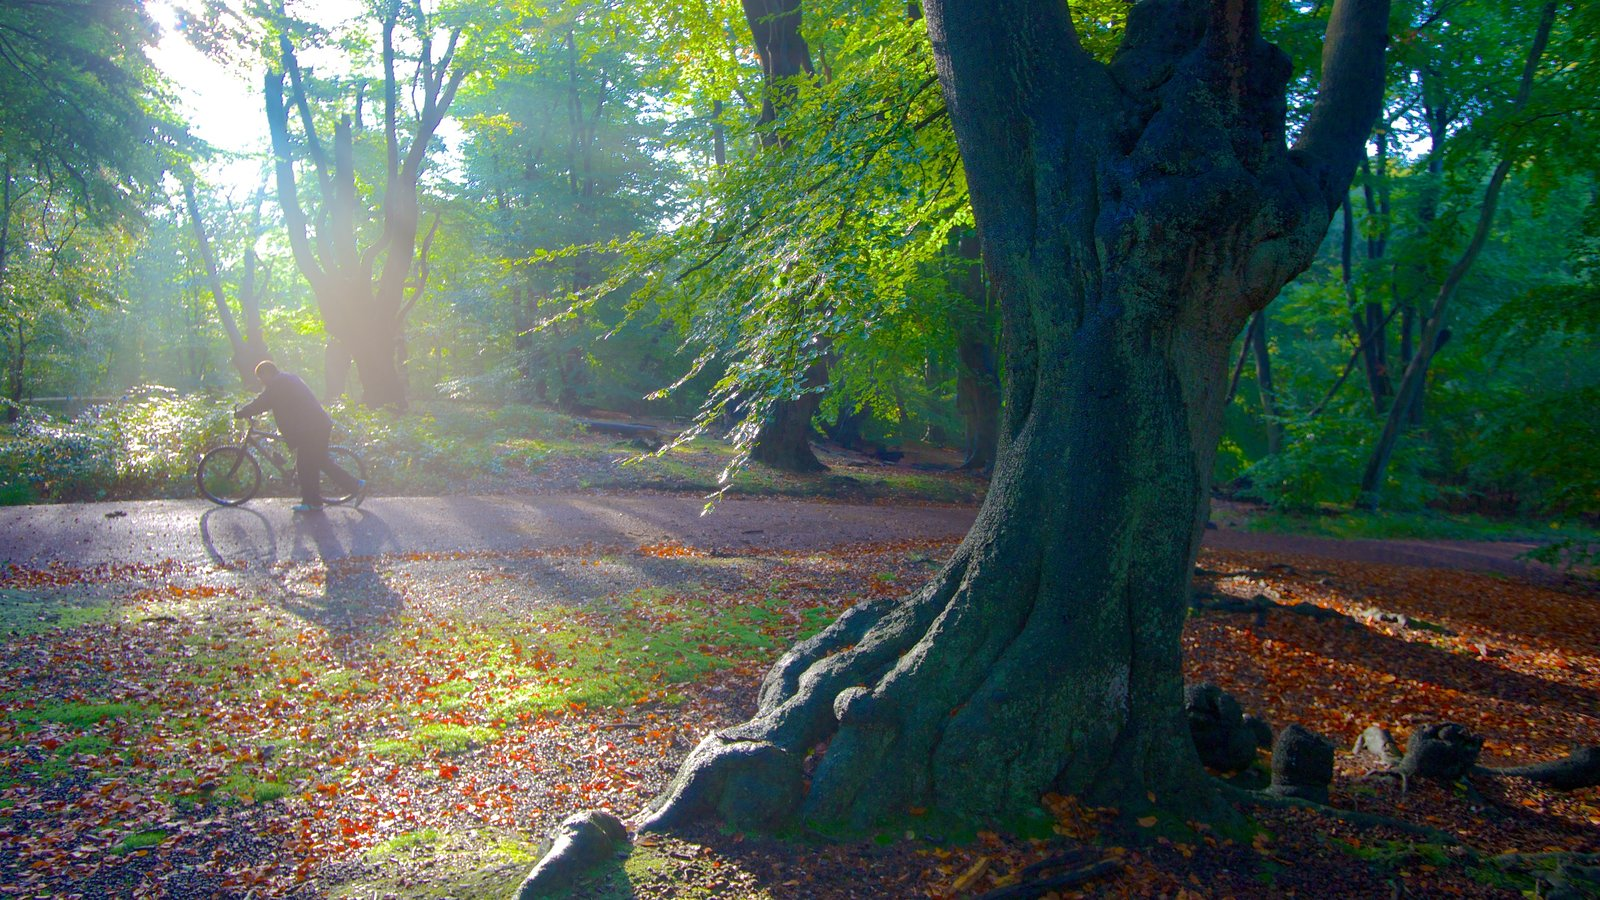 Epping Forest which includes autumn leaves, forests and cycling